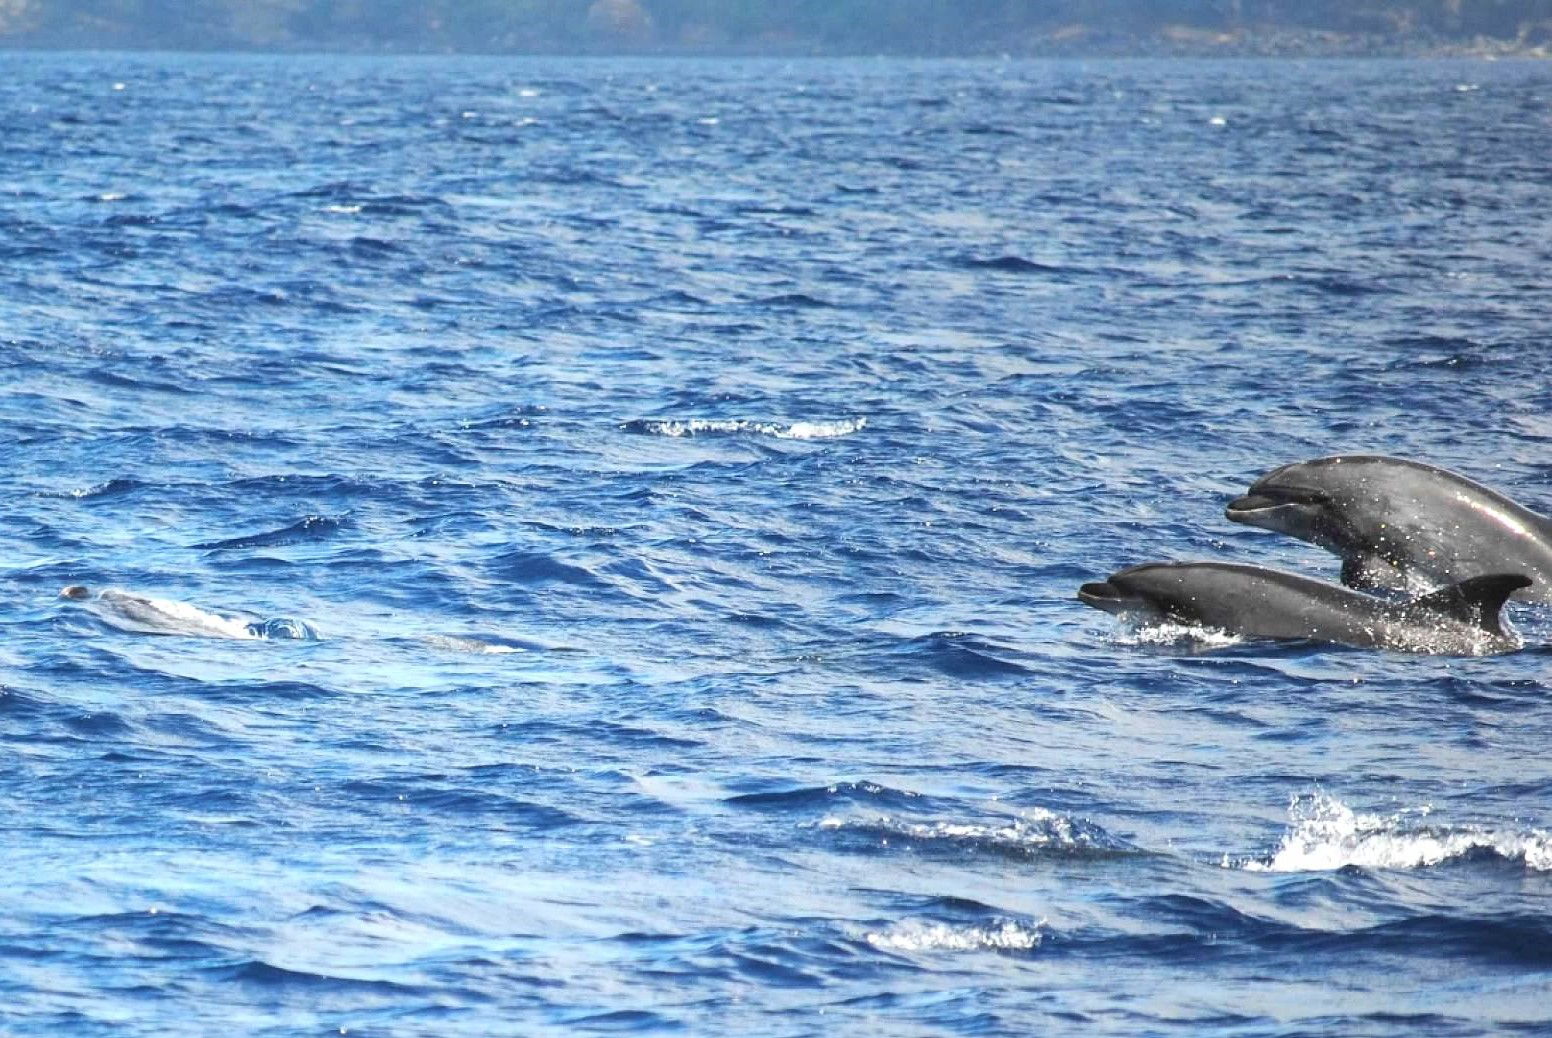 Dolphins off Sao Miguel Island, Azores